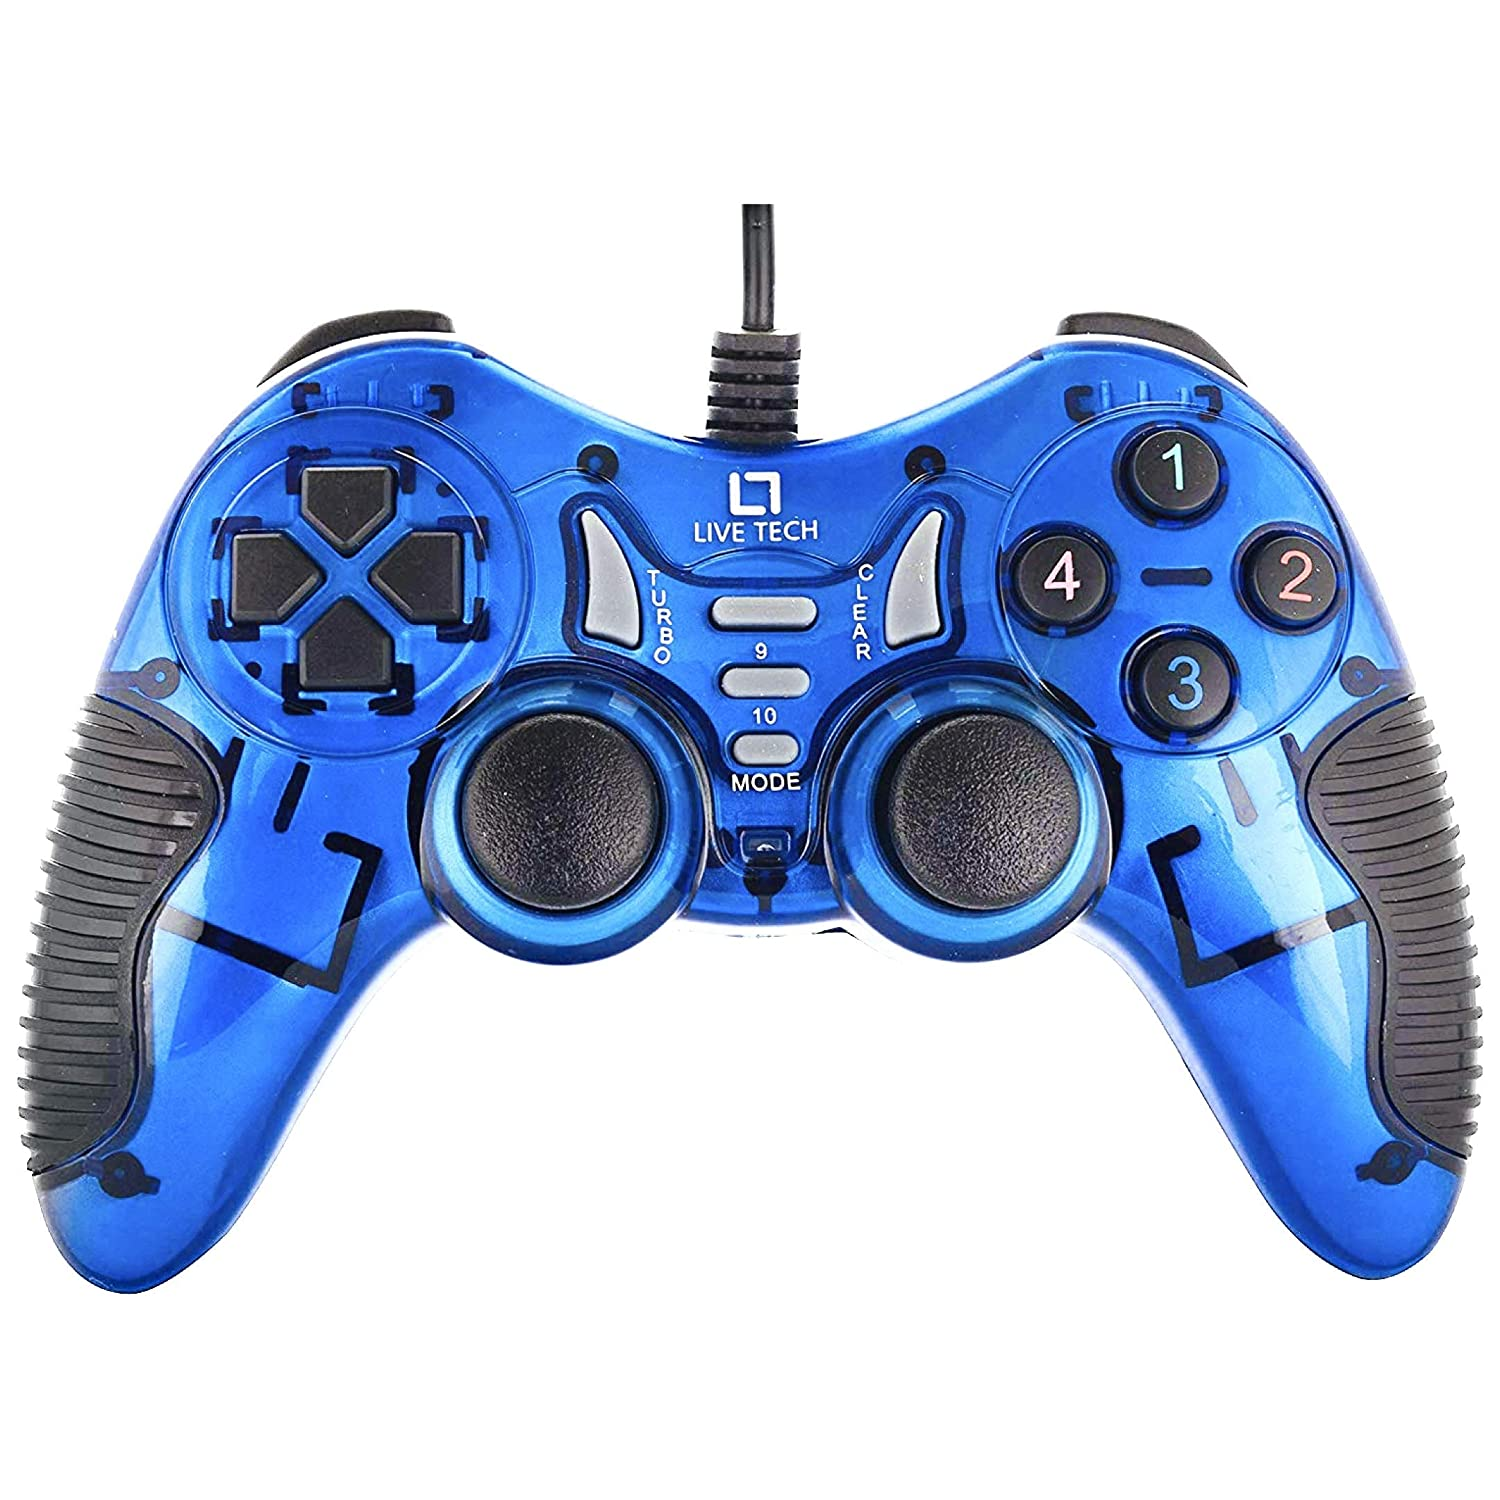 [TOP 5] Best Gamepad for PC Under ₹1000 [Feb. 2021] 2